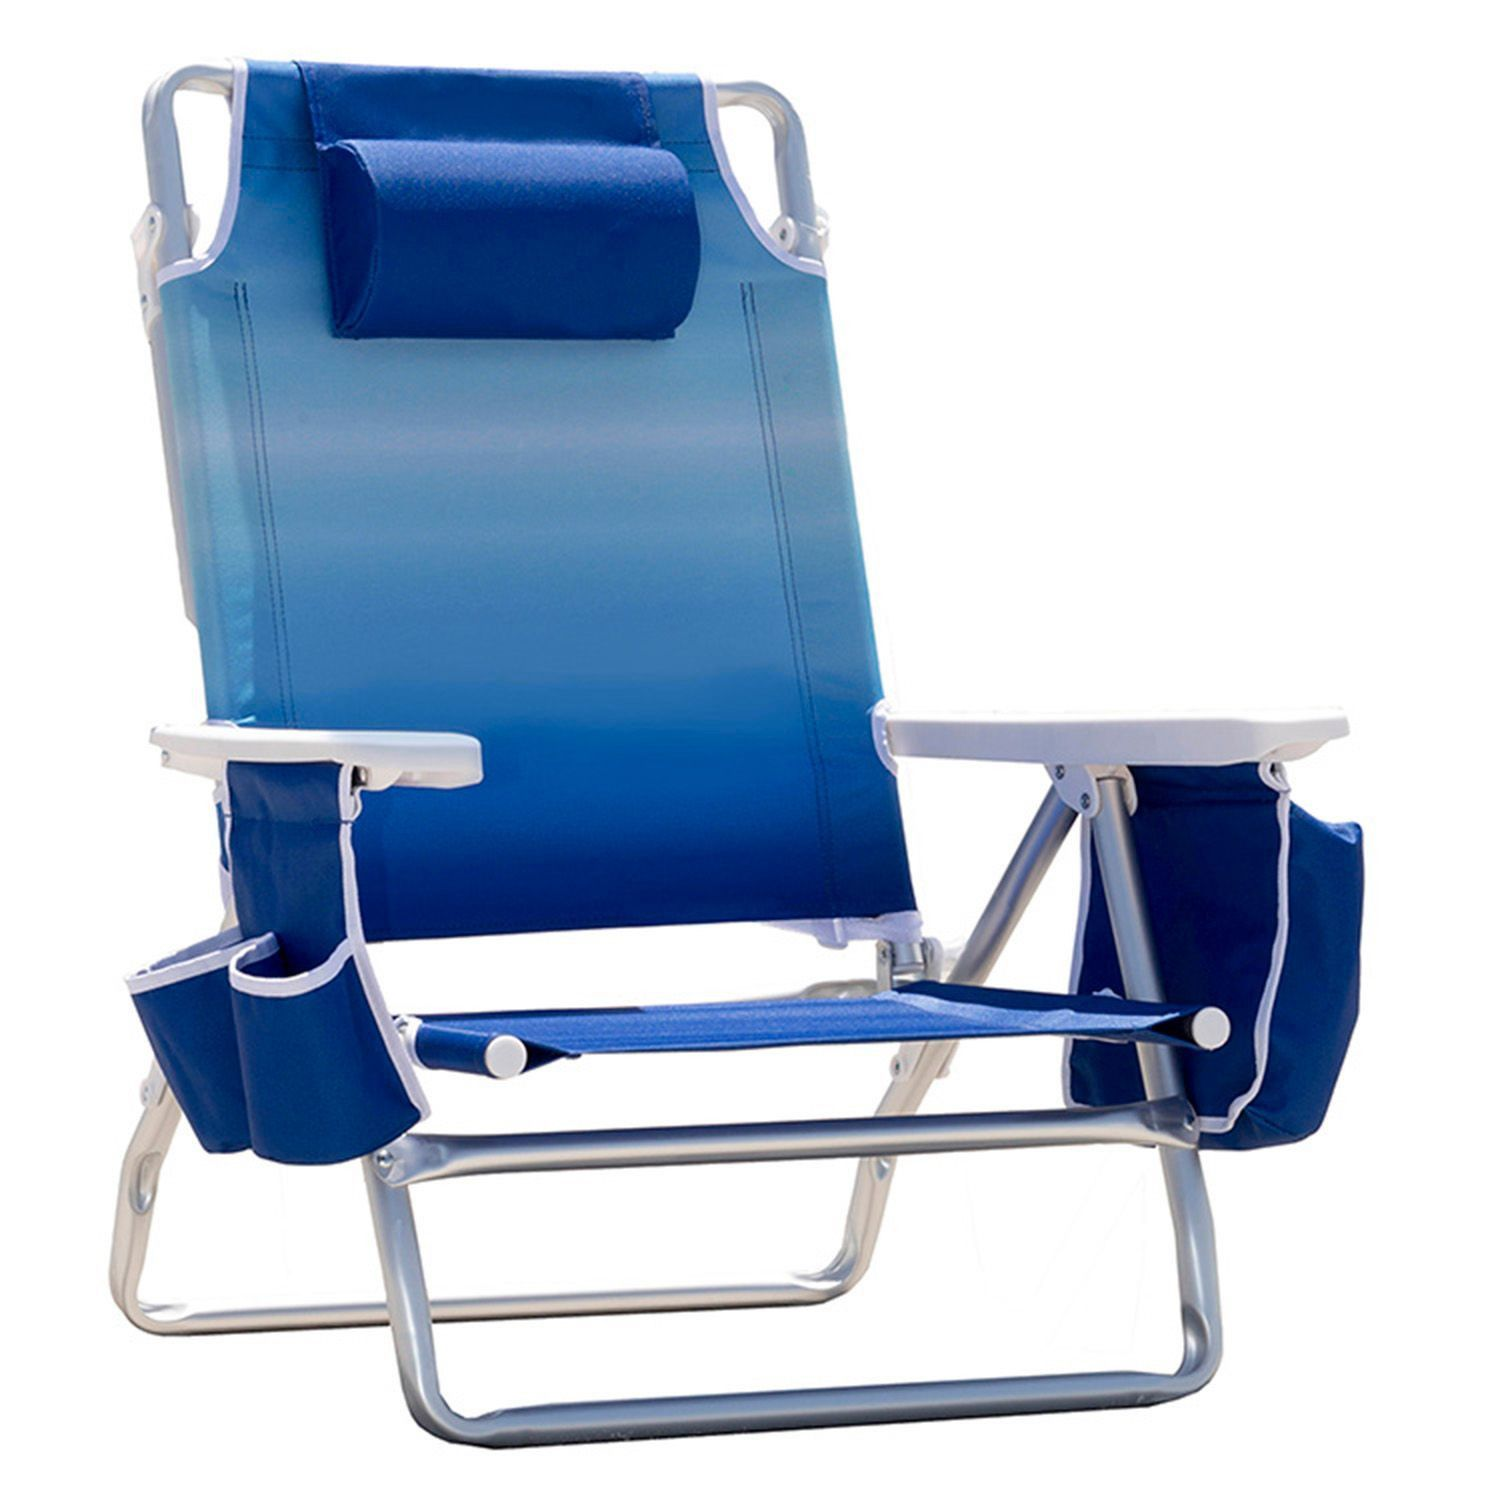 Nautica Beach Chair w/Side Cooler Pouch & Cup Holders